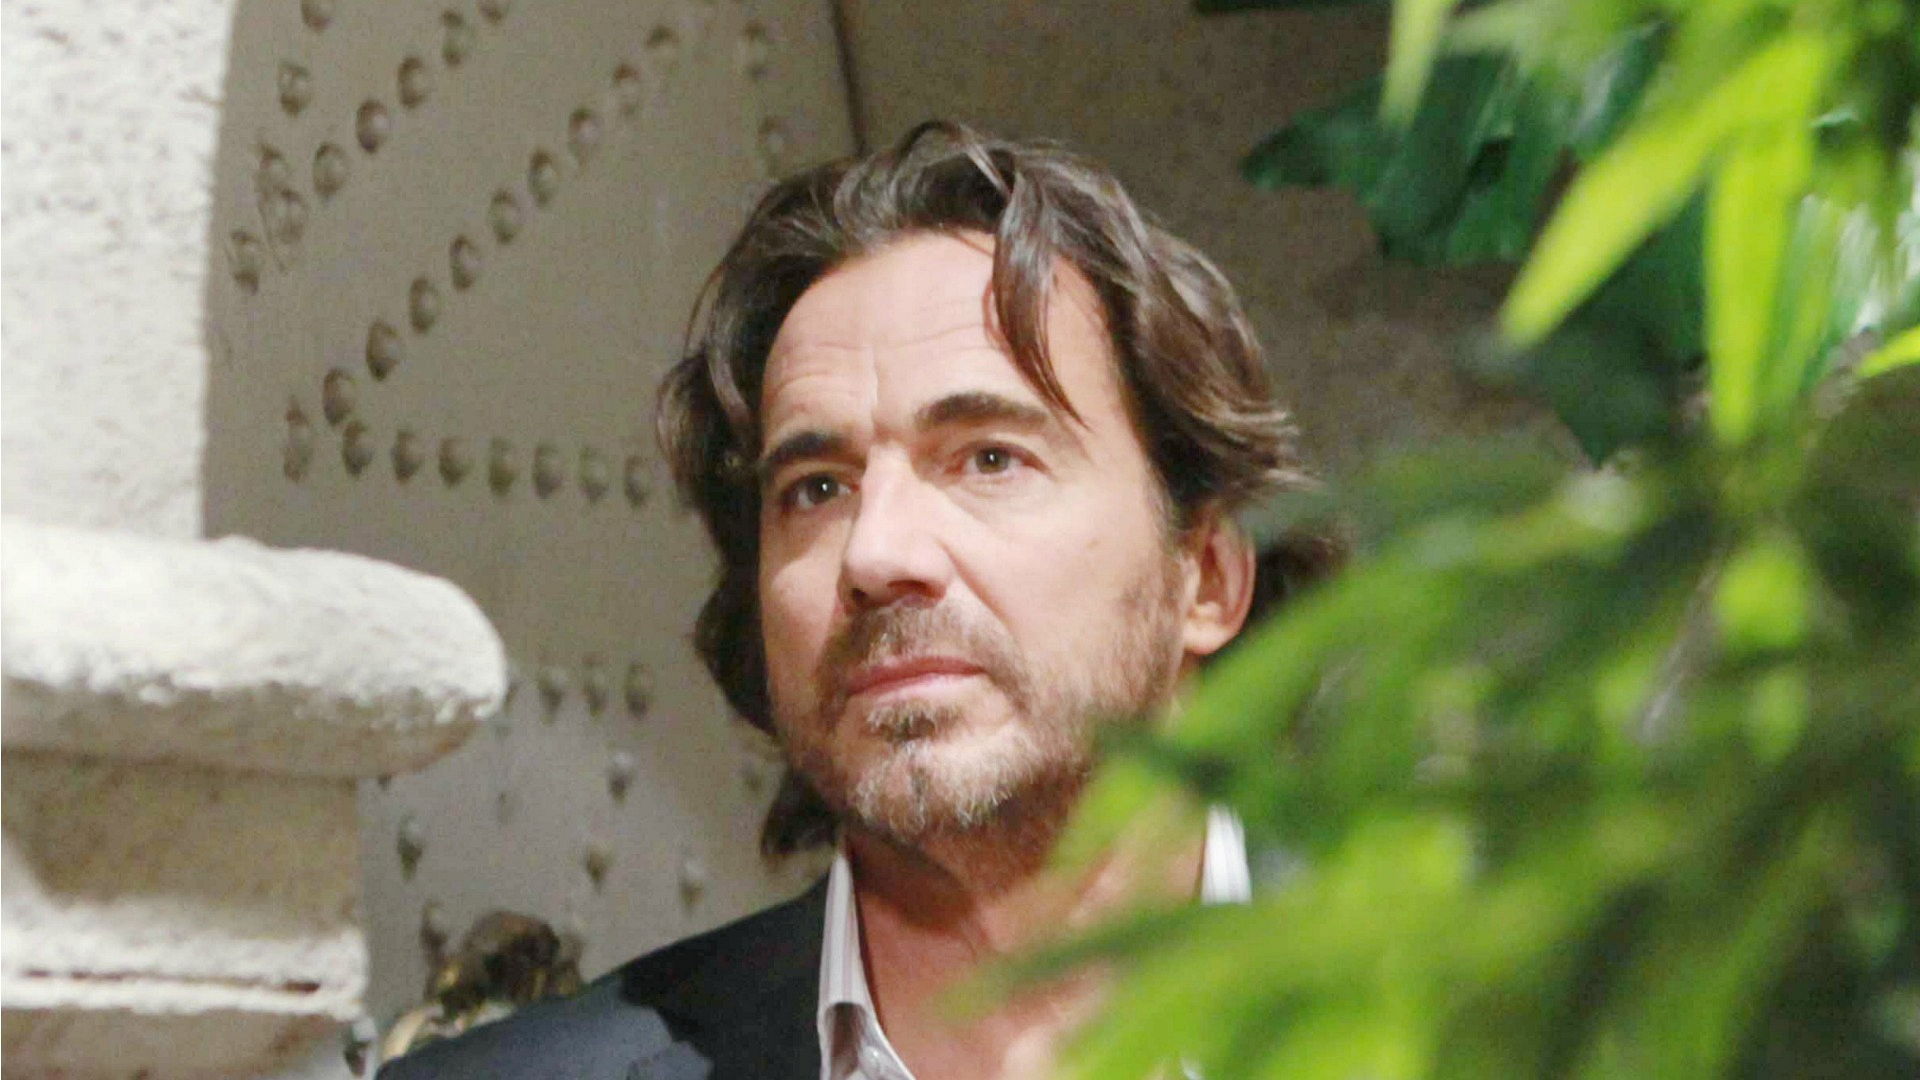 Ridge is forced to search his soul after he overhears a personal conversation between Caroline and Thomas.